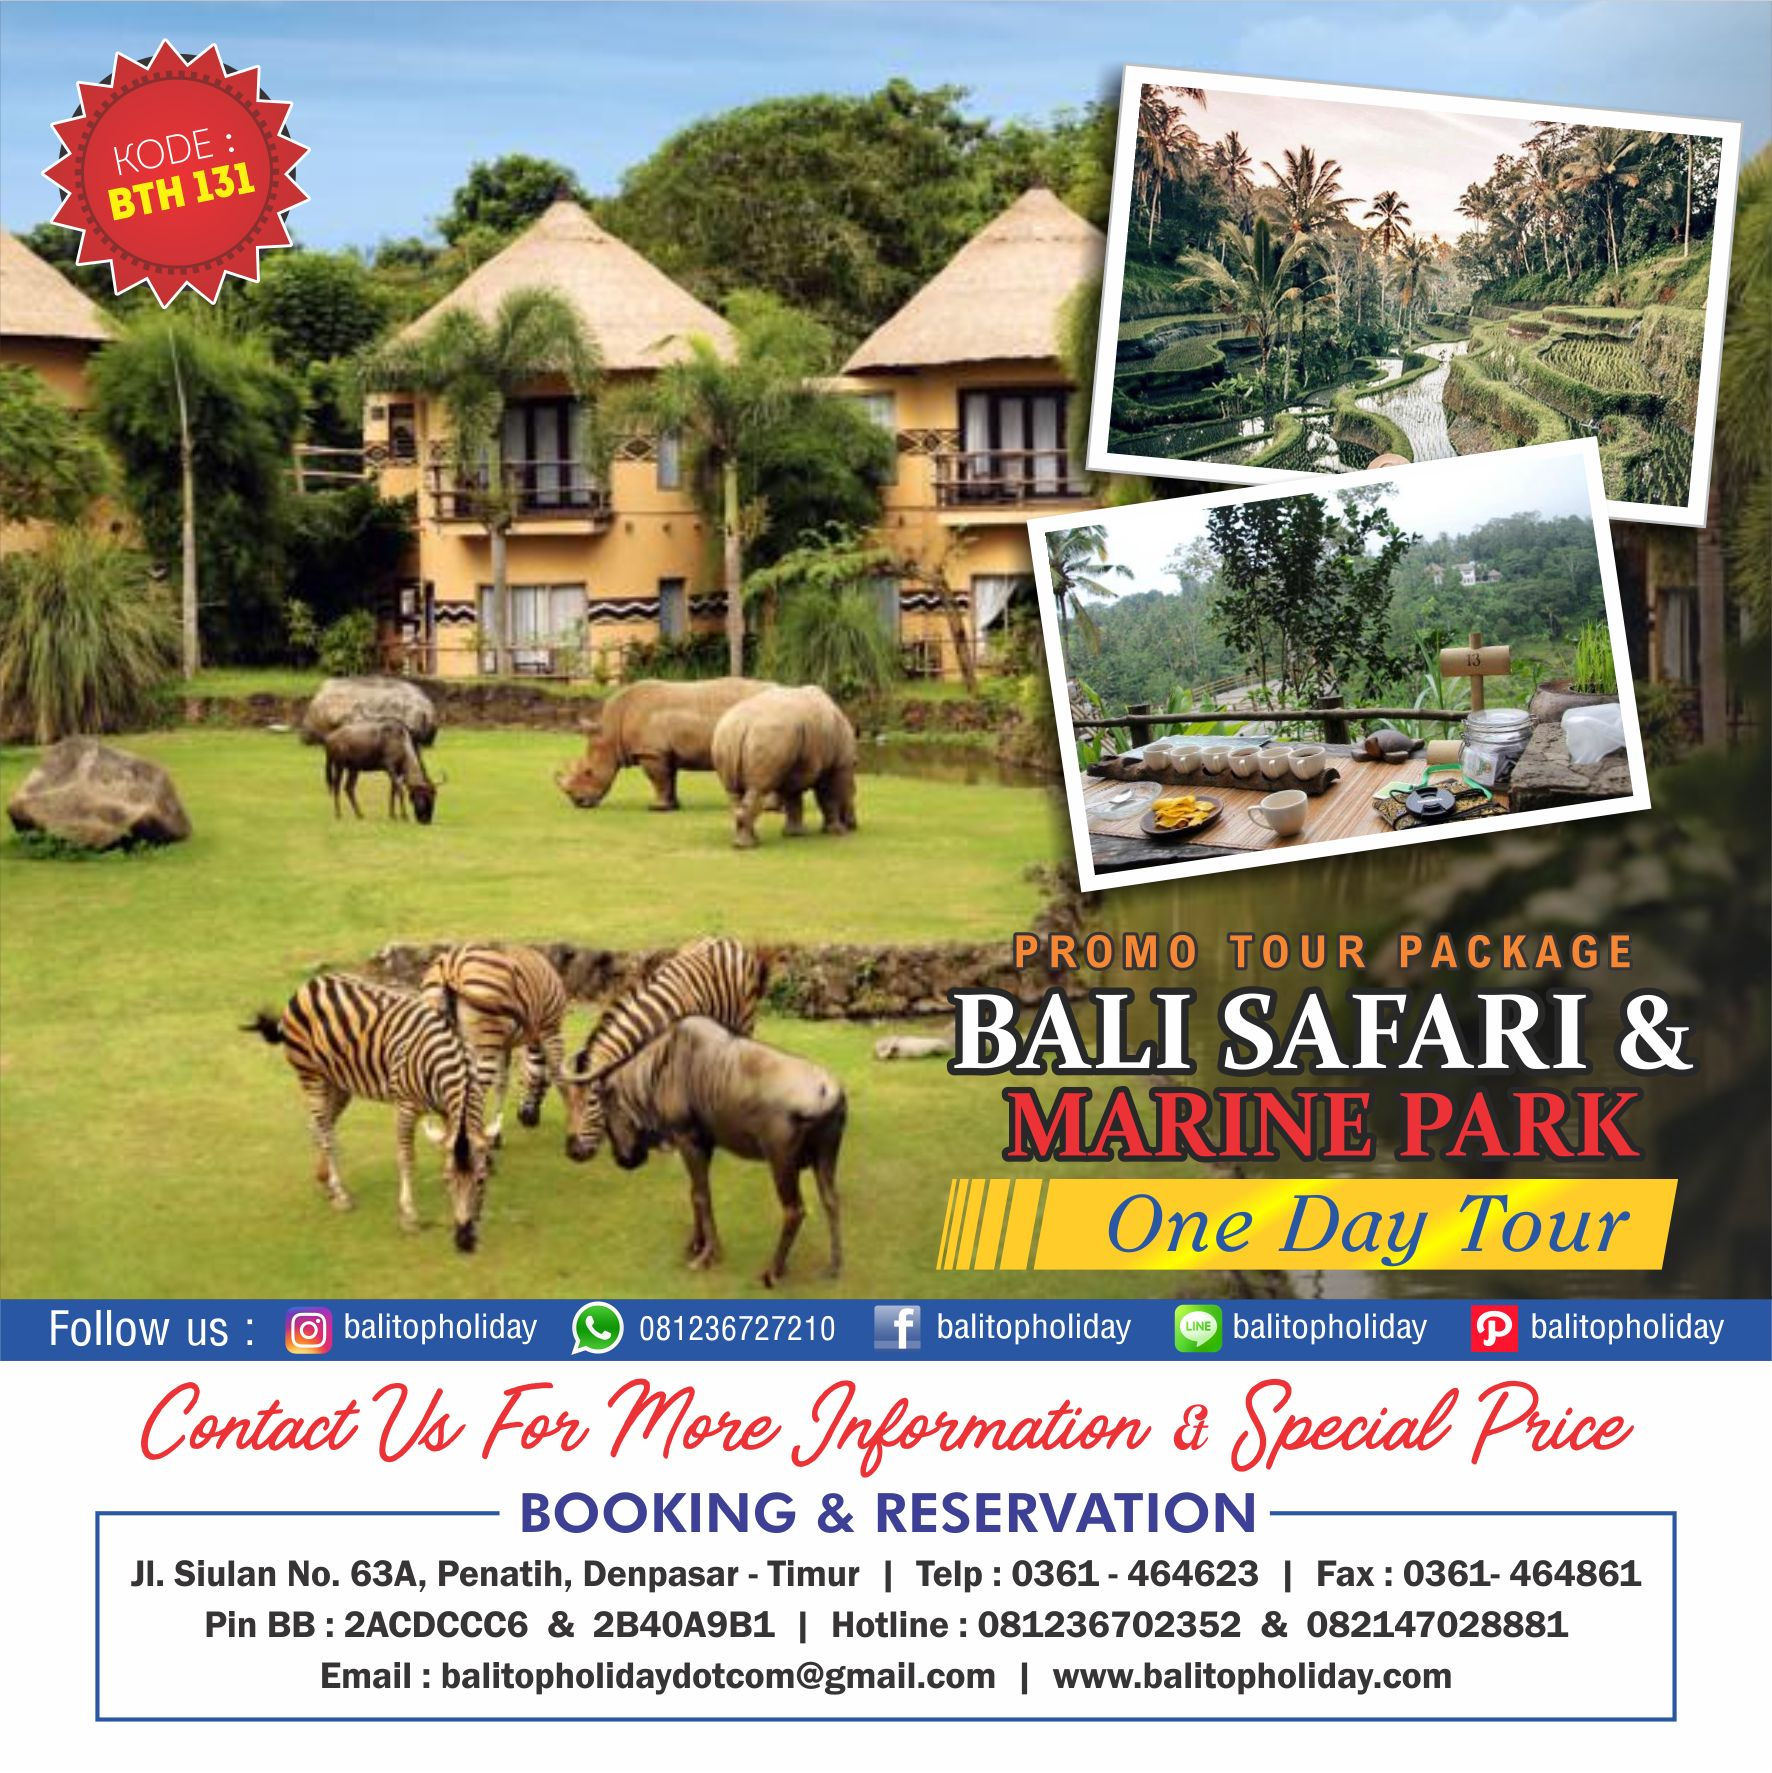 Bali safari One Day Tour BTH 131